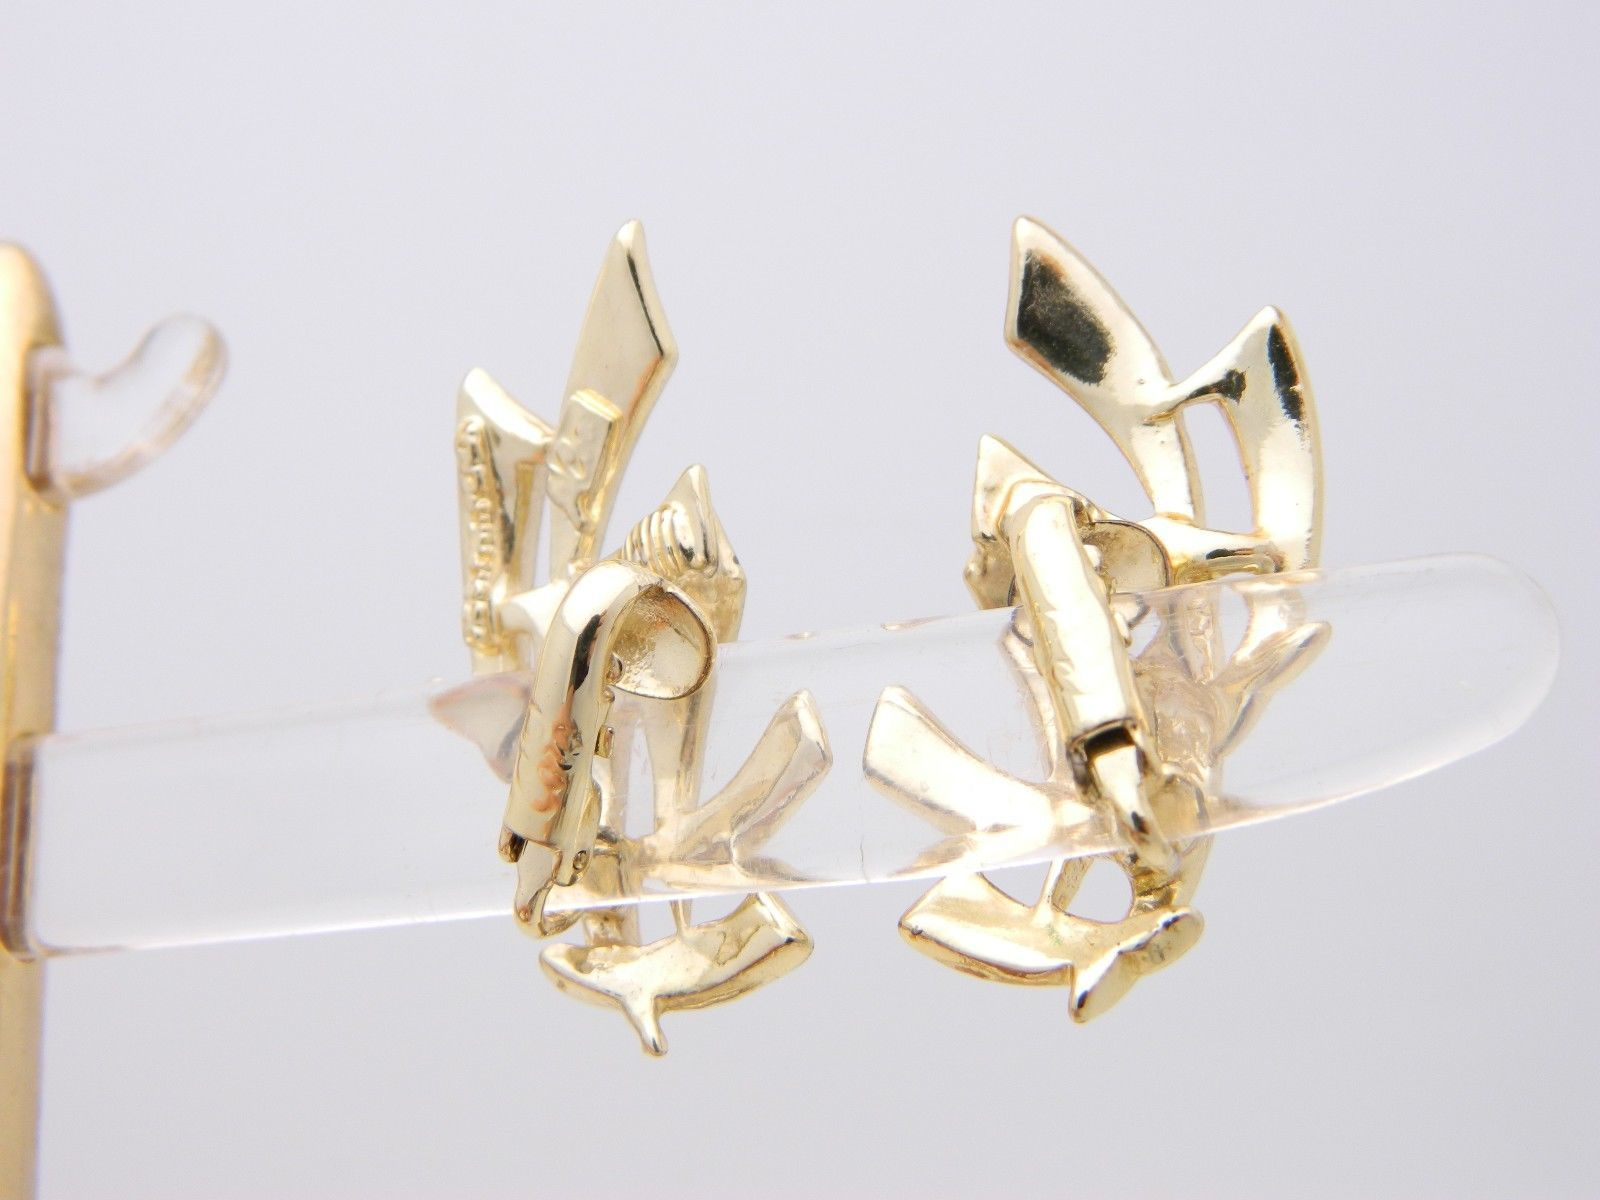 VTG 1950s Gold Tone PEGASUS CORO White Enamel Abstract Clip Earrings